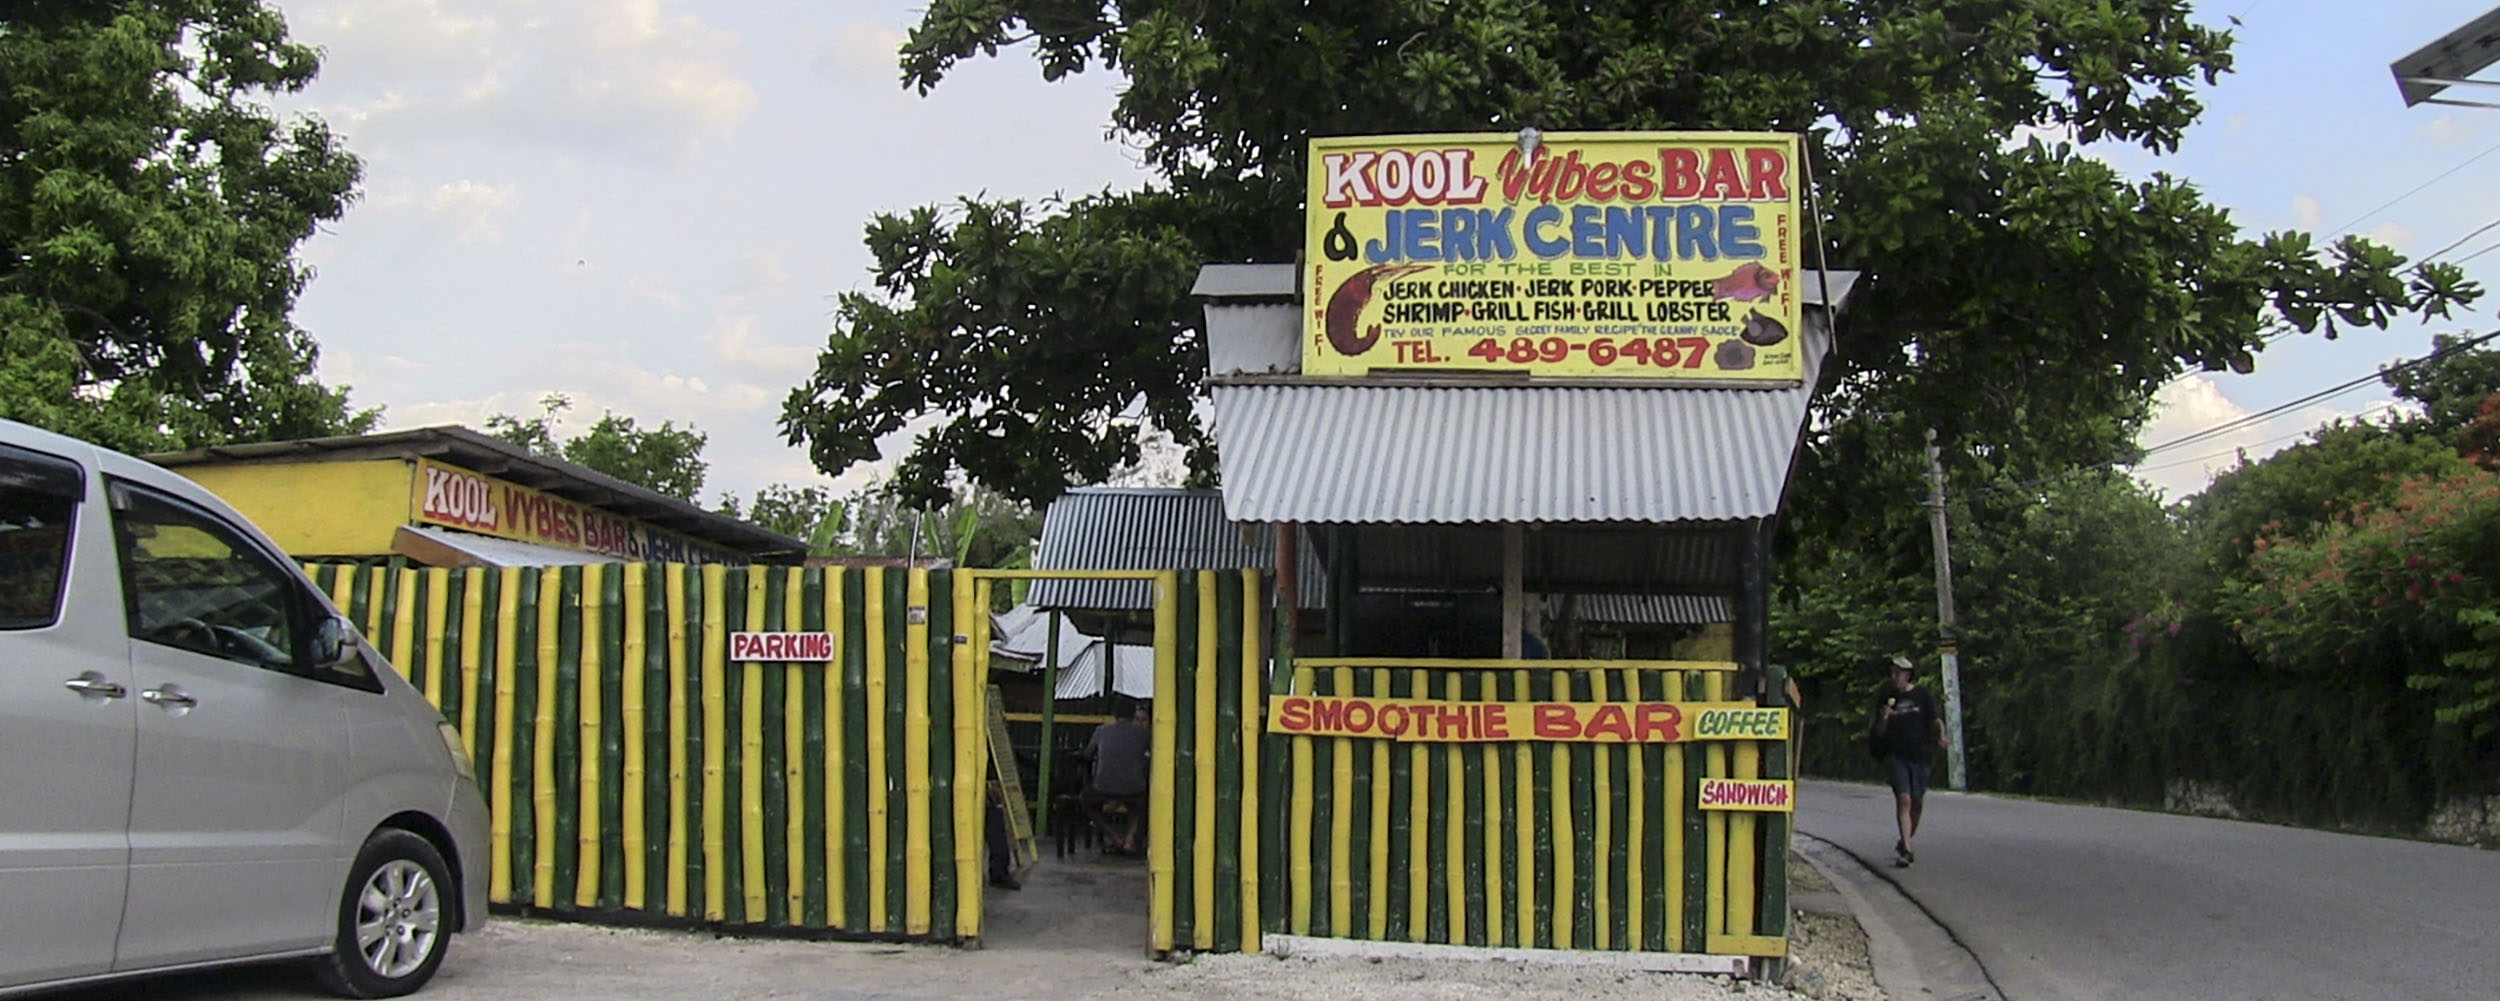 Kool Vybes Bar & Jerk Centre, West End, Negril Jamaica